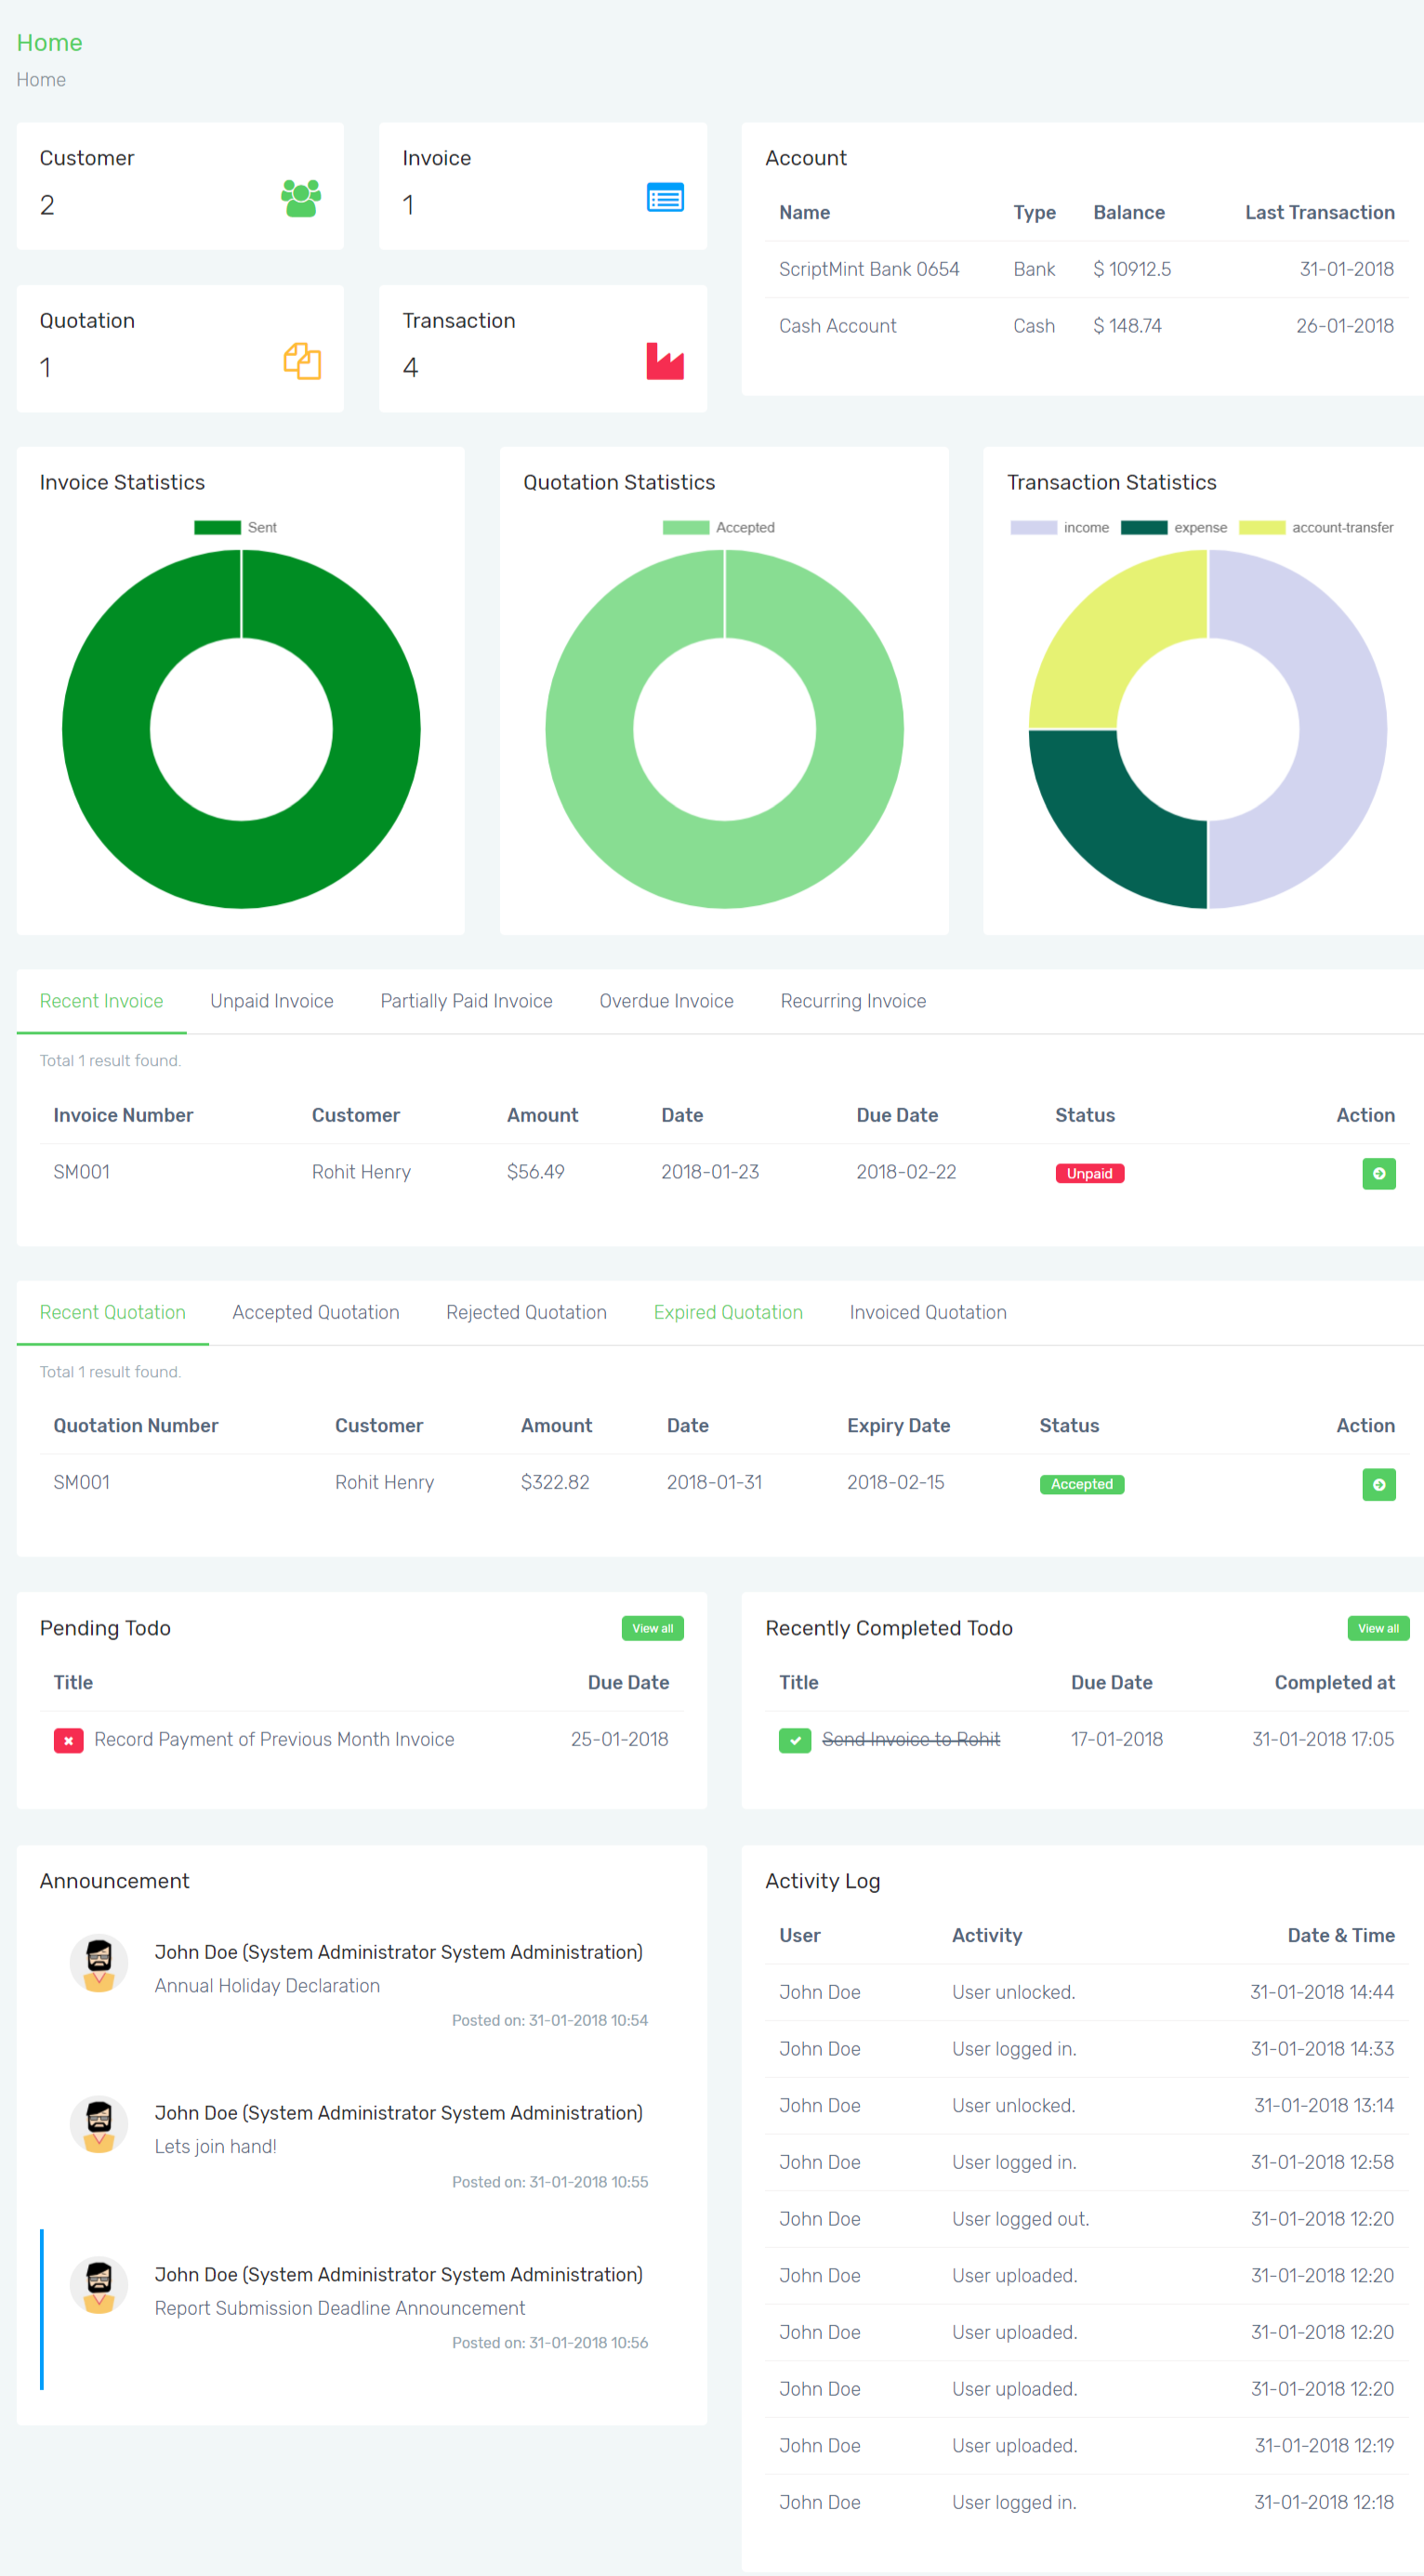 Mint Invoice - Create, Send, Pay Invoices, Paypal & Stripe Payment Gateway